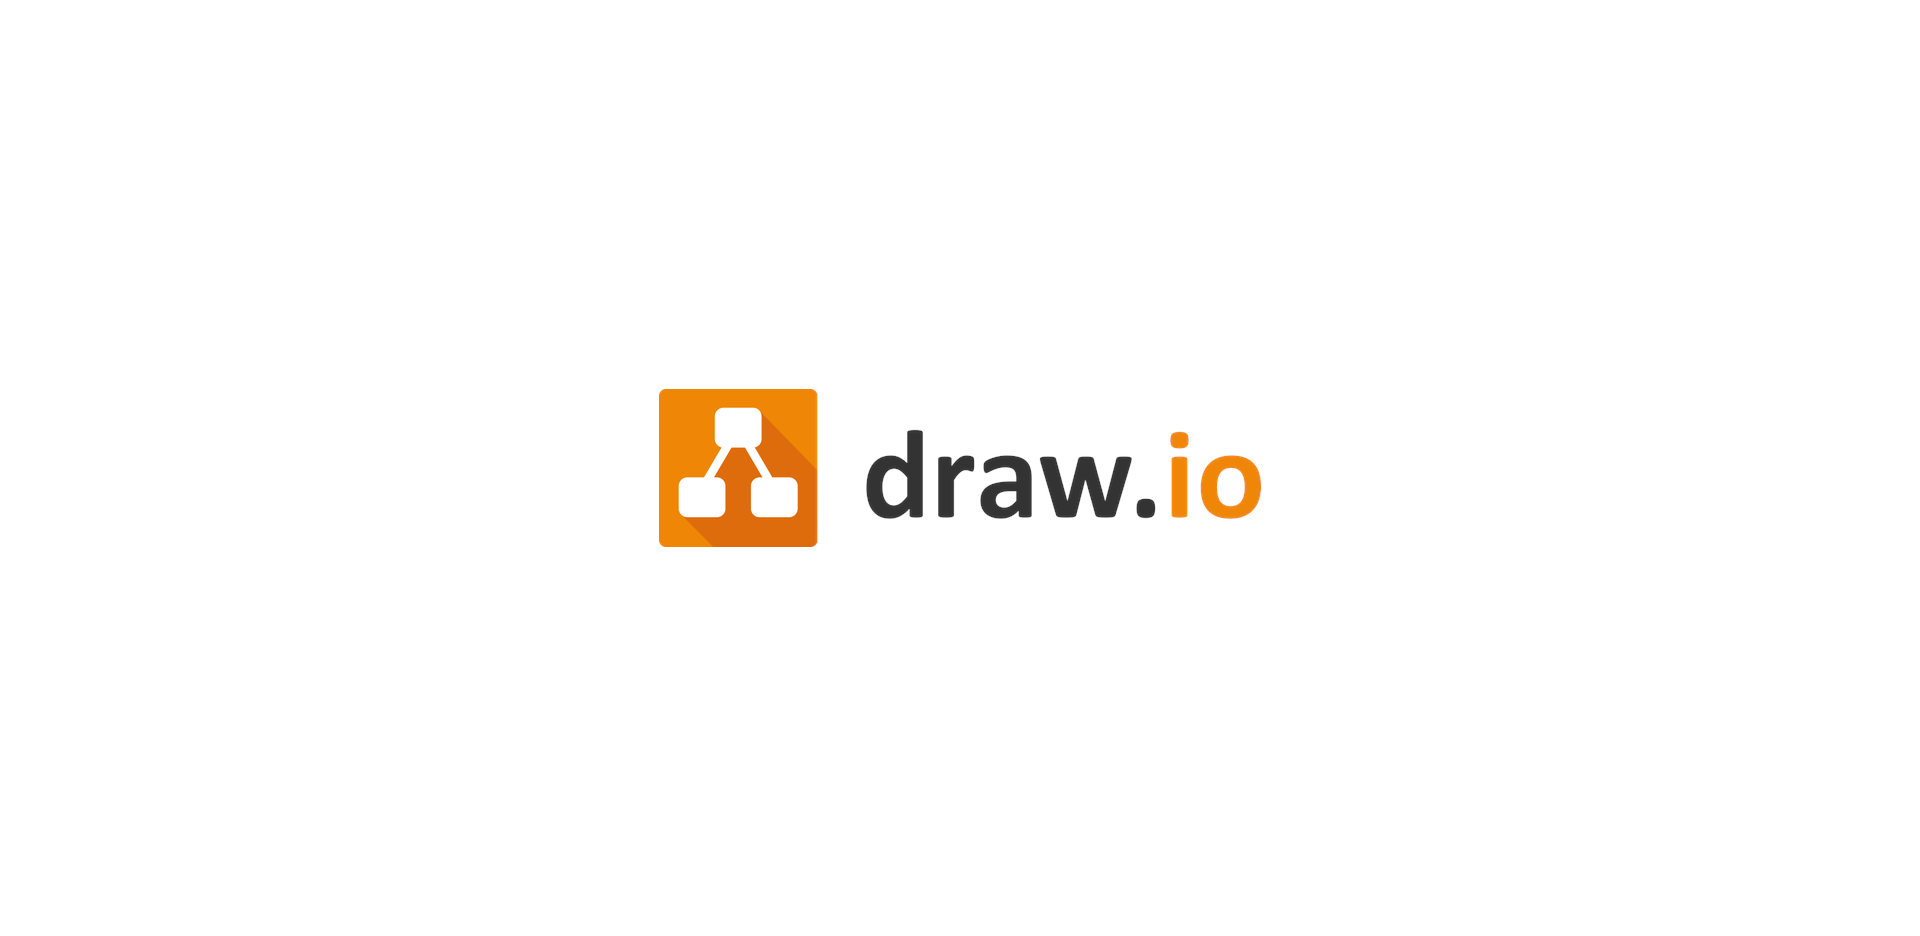 Draw.io | Mancomún on